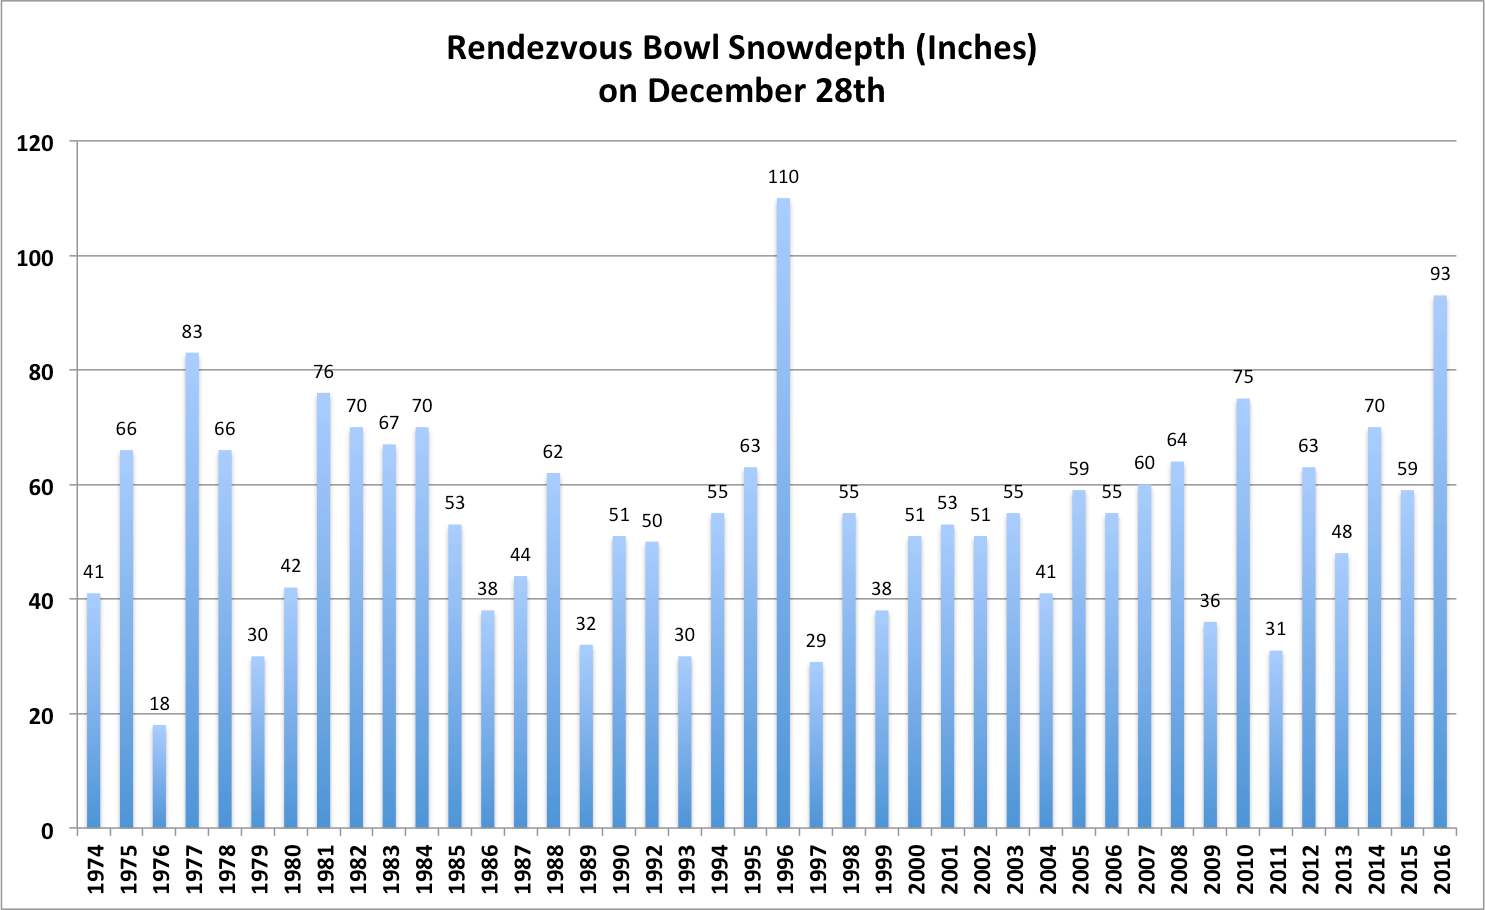 Rendezvous Bowl Snowdepth is looking GOOD.